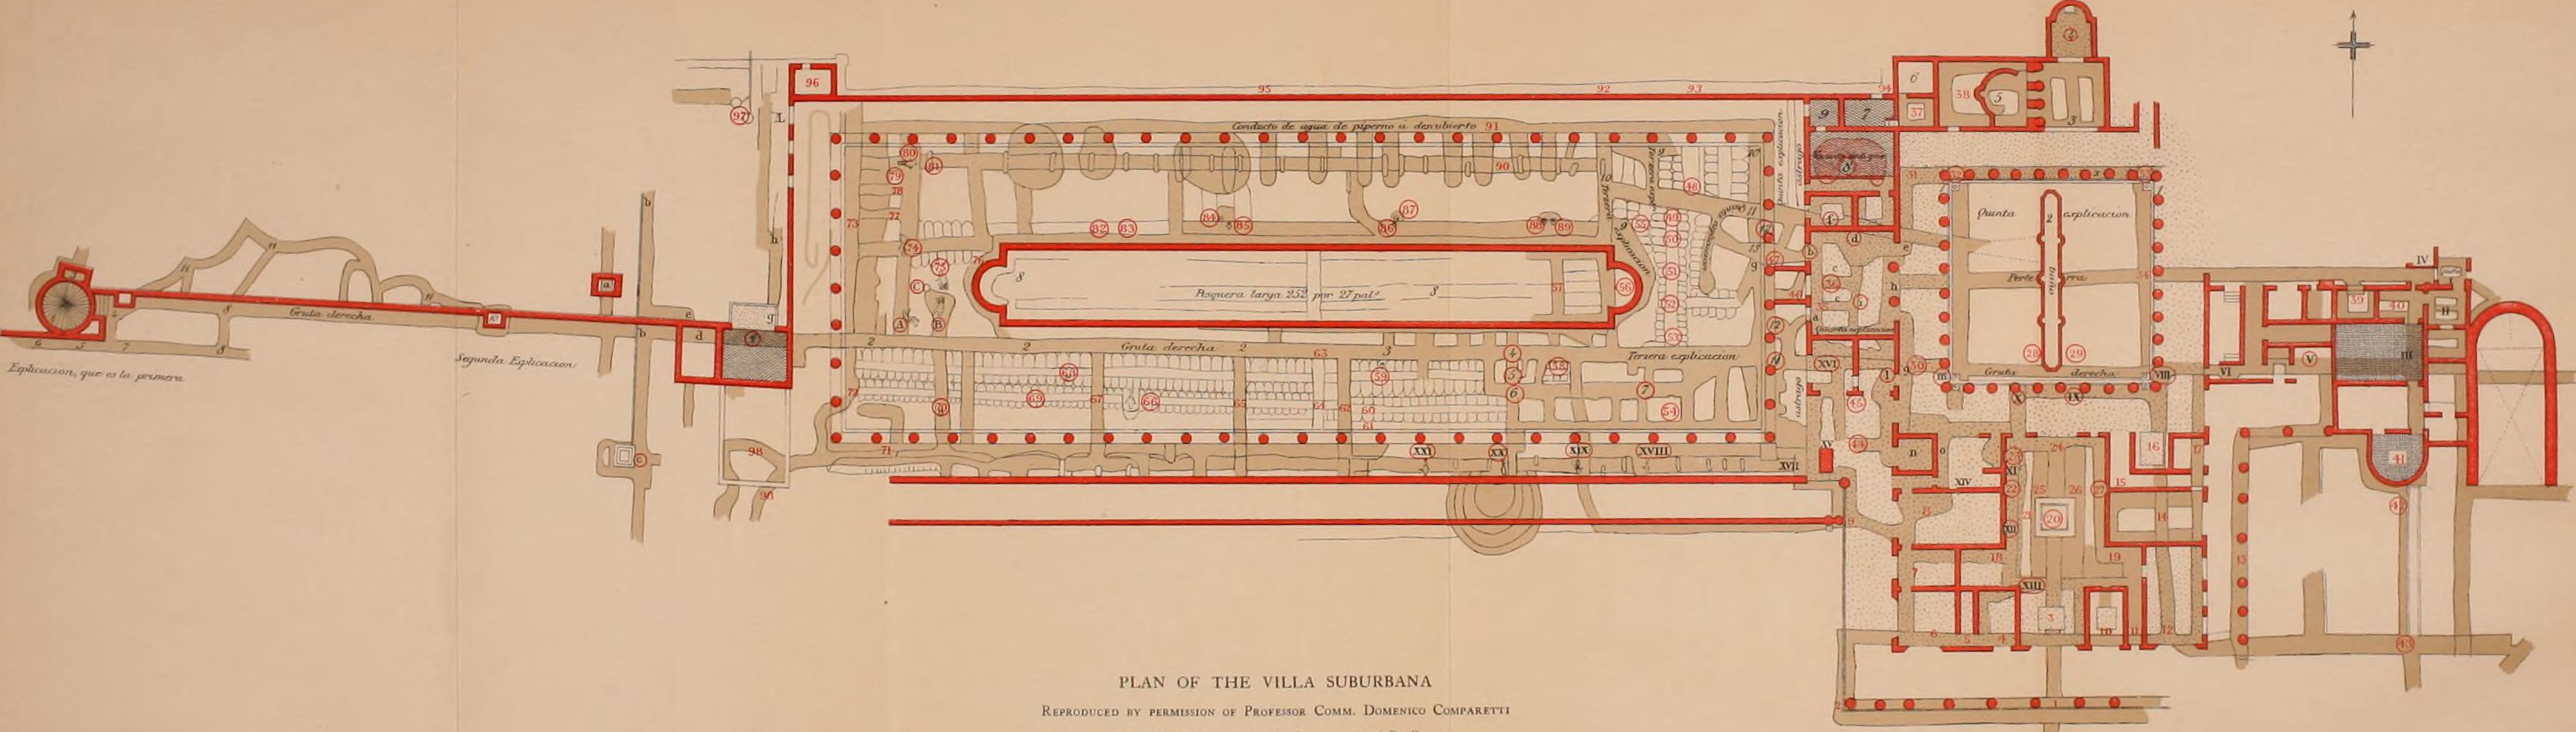 Ground plan of the Villa of the Papyri, Herculaneum, the largest surviving library from antiquity, our only direct source for the works of Chrysippus